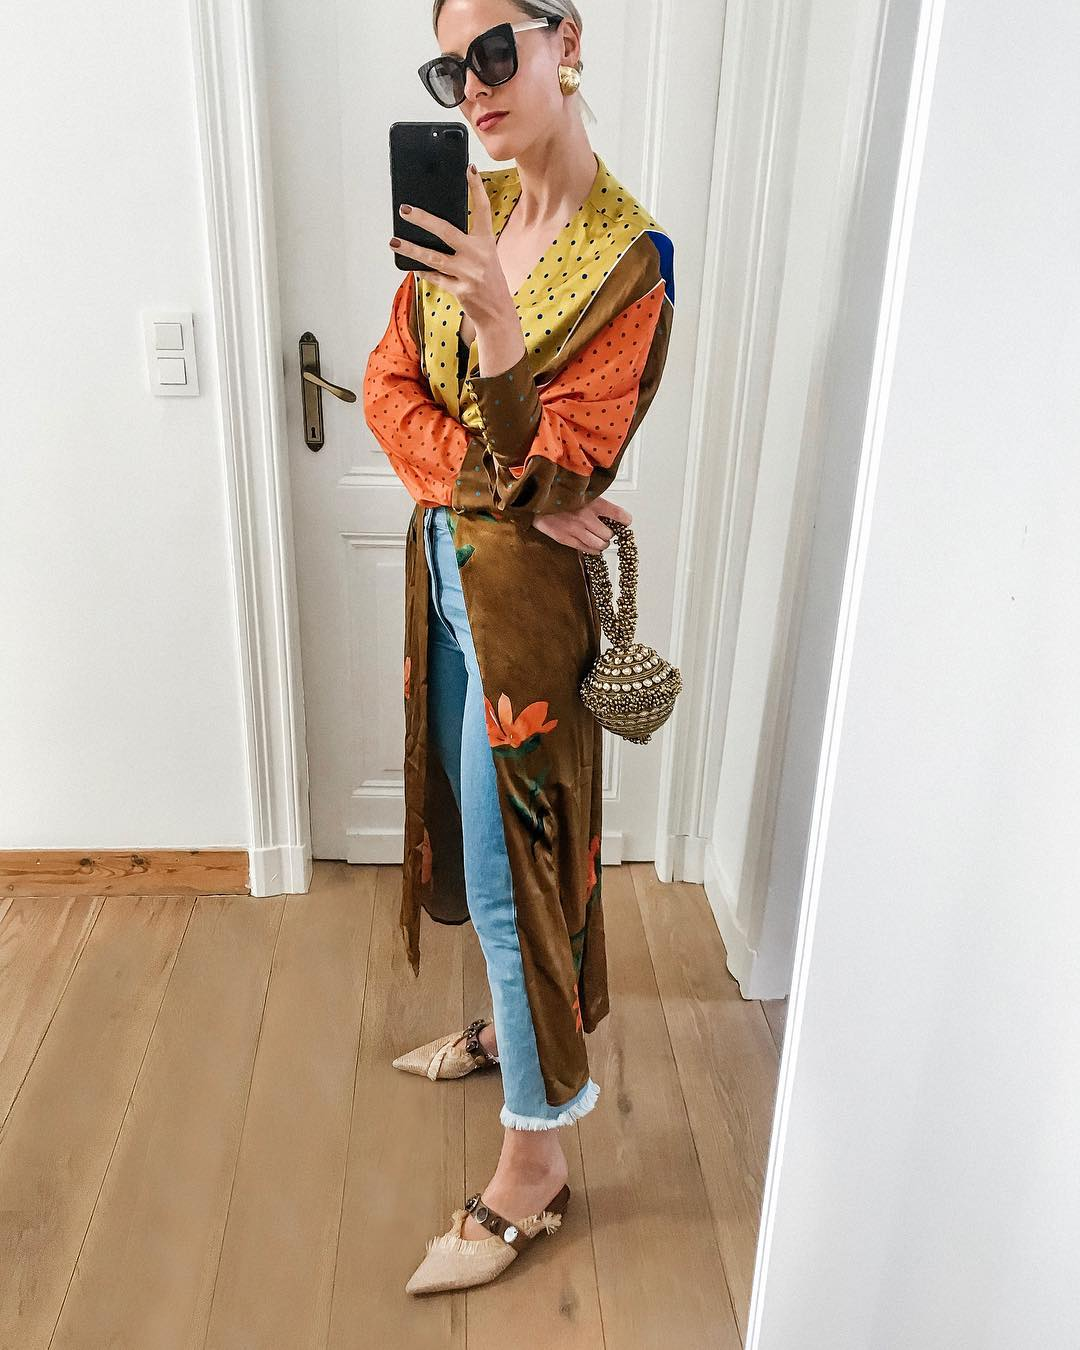 Fashionista's resident columnist Sofie Valkiers casual Autumn twist on Summer dress Mae Cassidy, Antique Gold sparkly Simi Sparkle clutch bag styled  Silvia Tcherassi  Citizens of Humanity jeans woven Uterqüe silders Jimmy Choo sunglasses bracelet bag